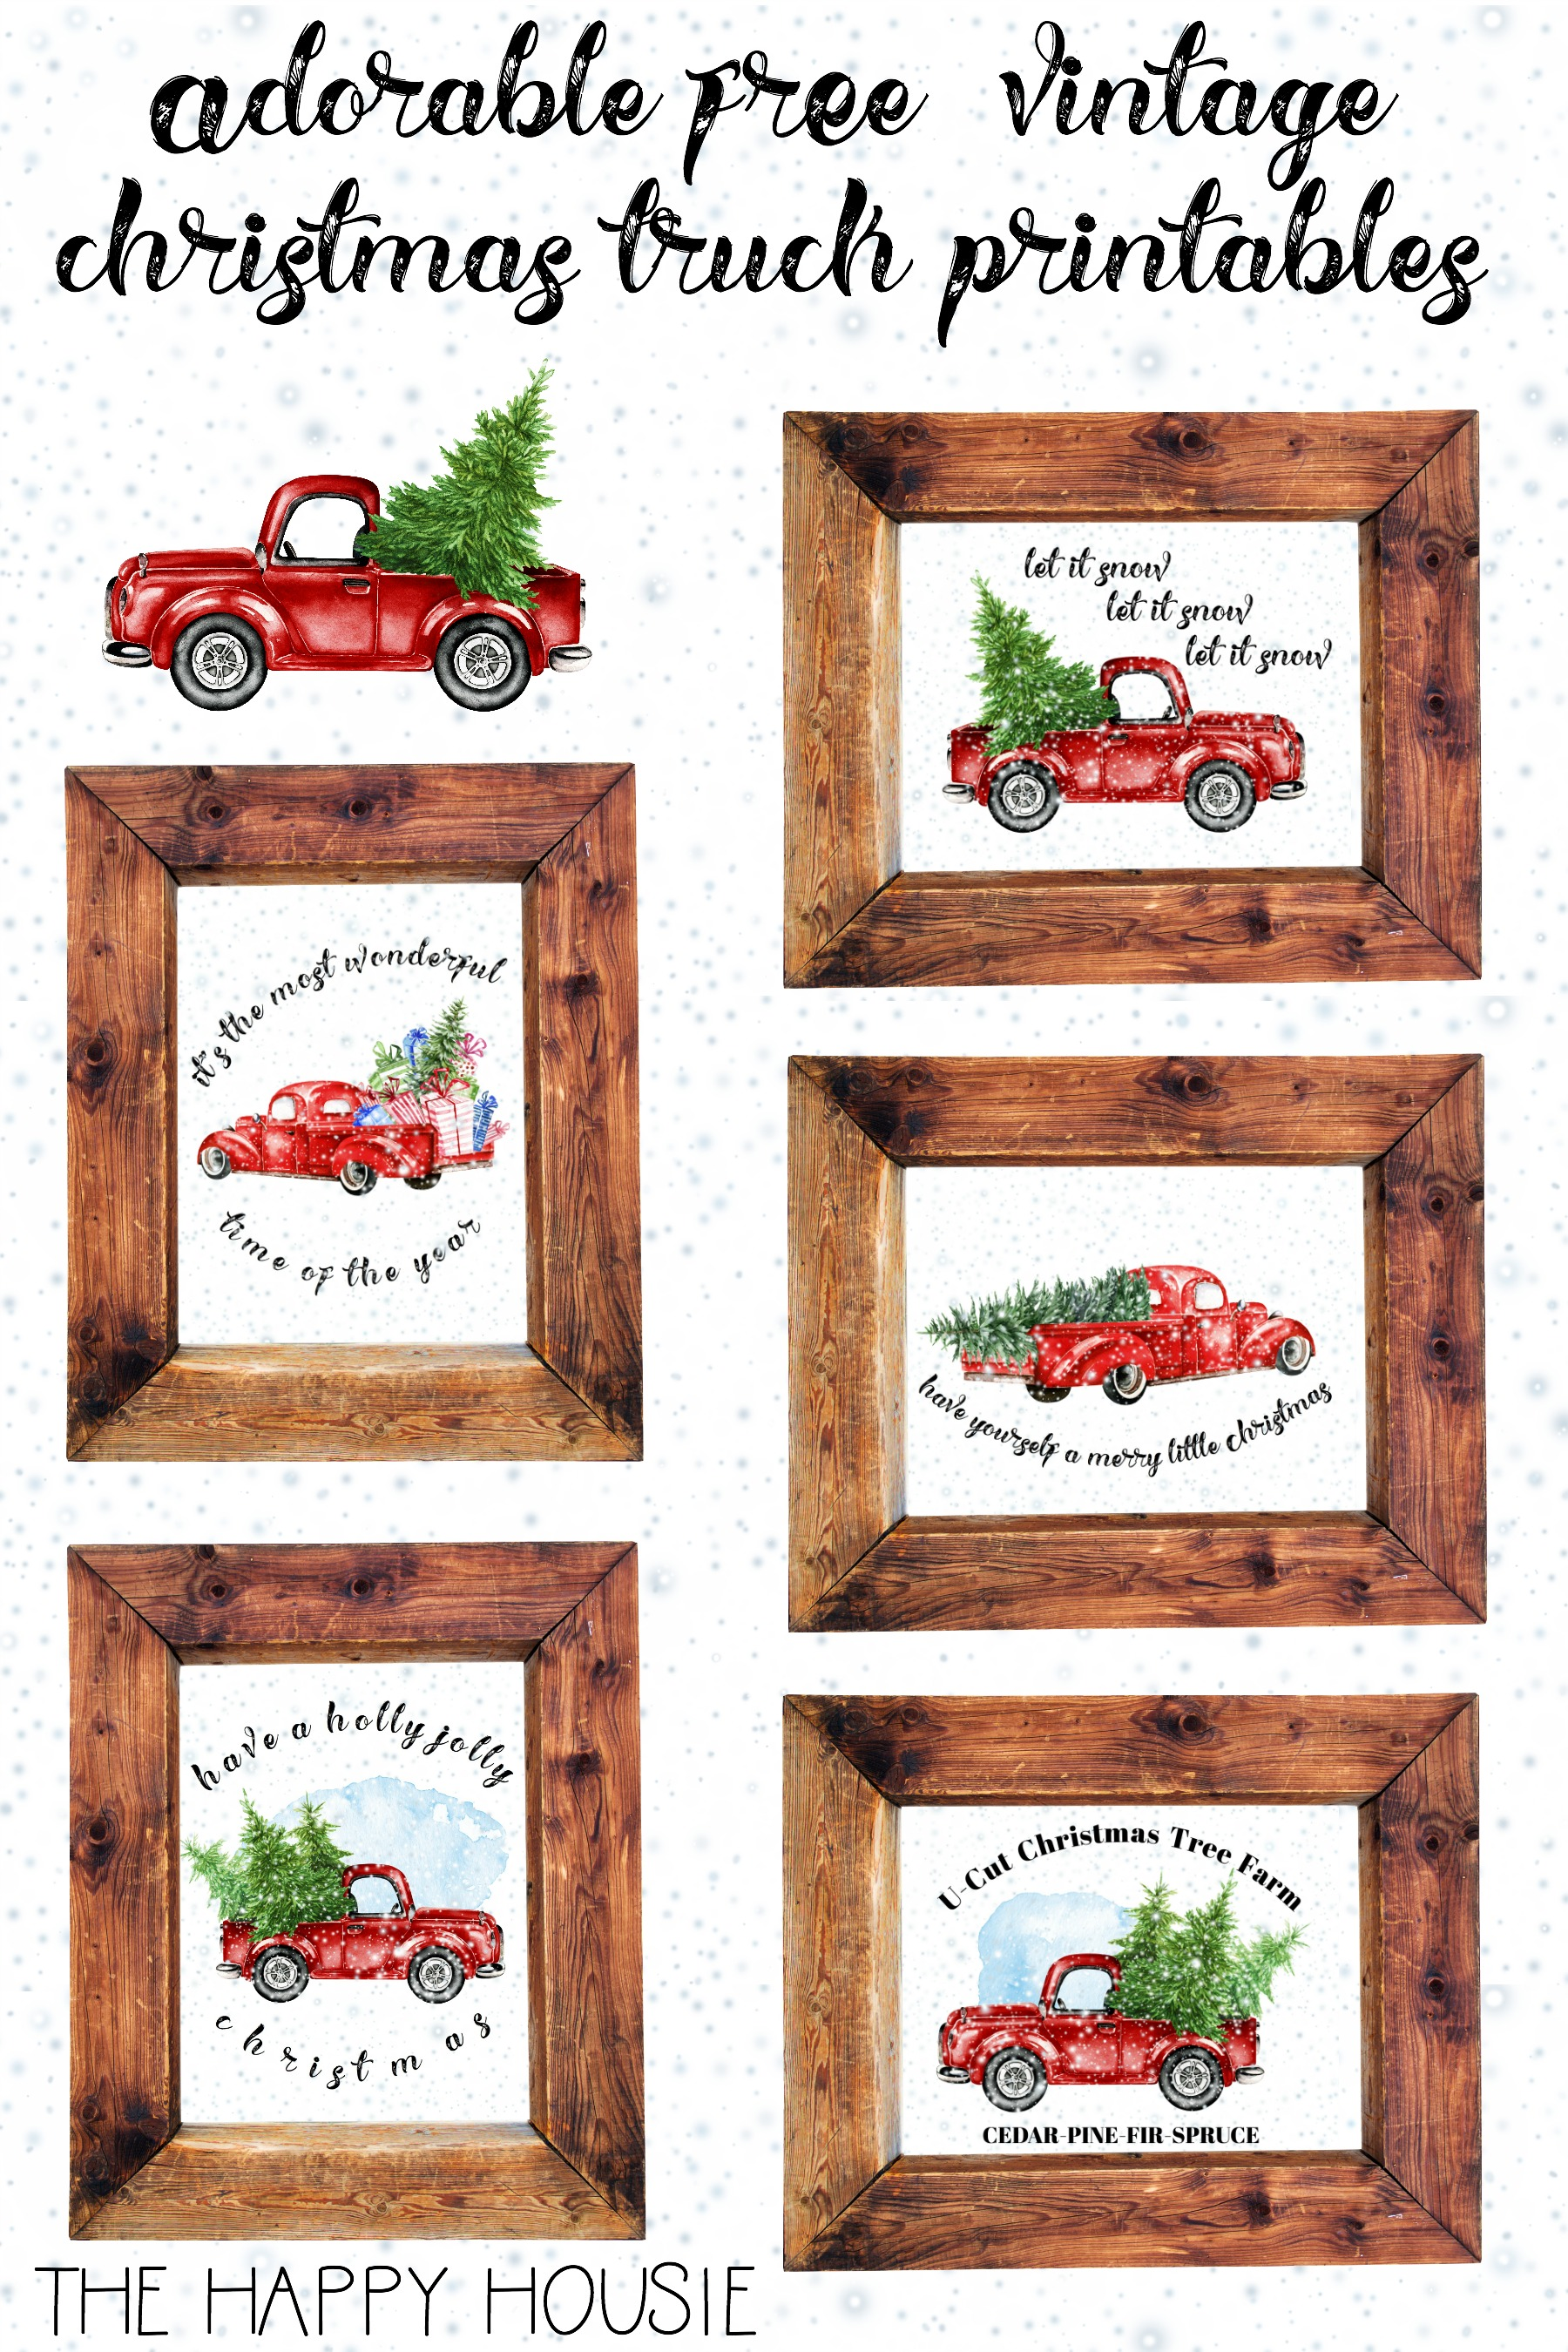 Vintage Free Printable Merry Christmas Clipart.